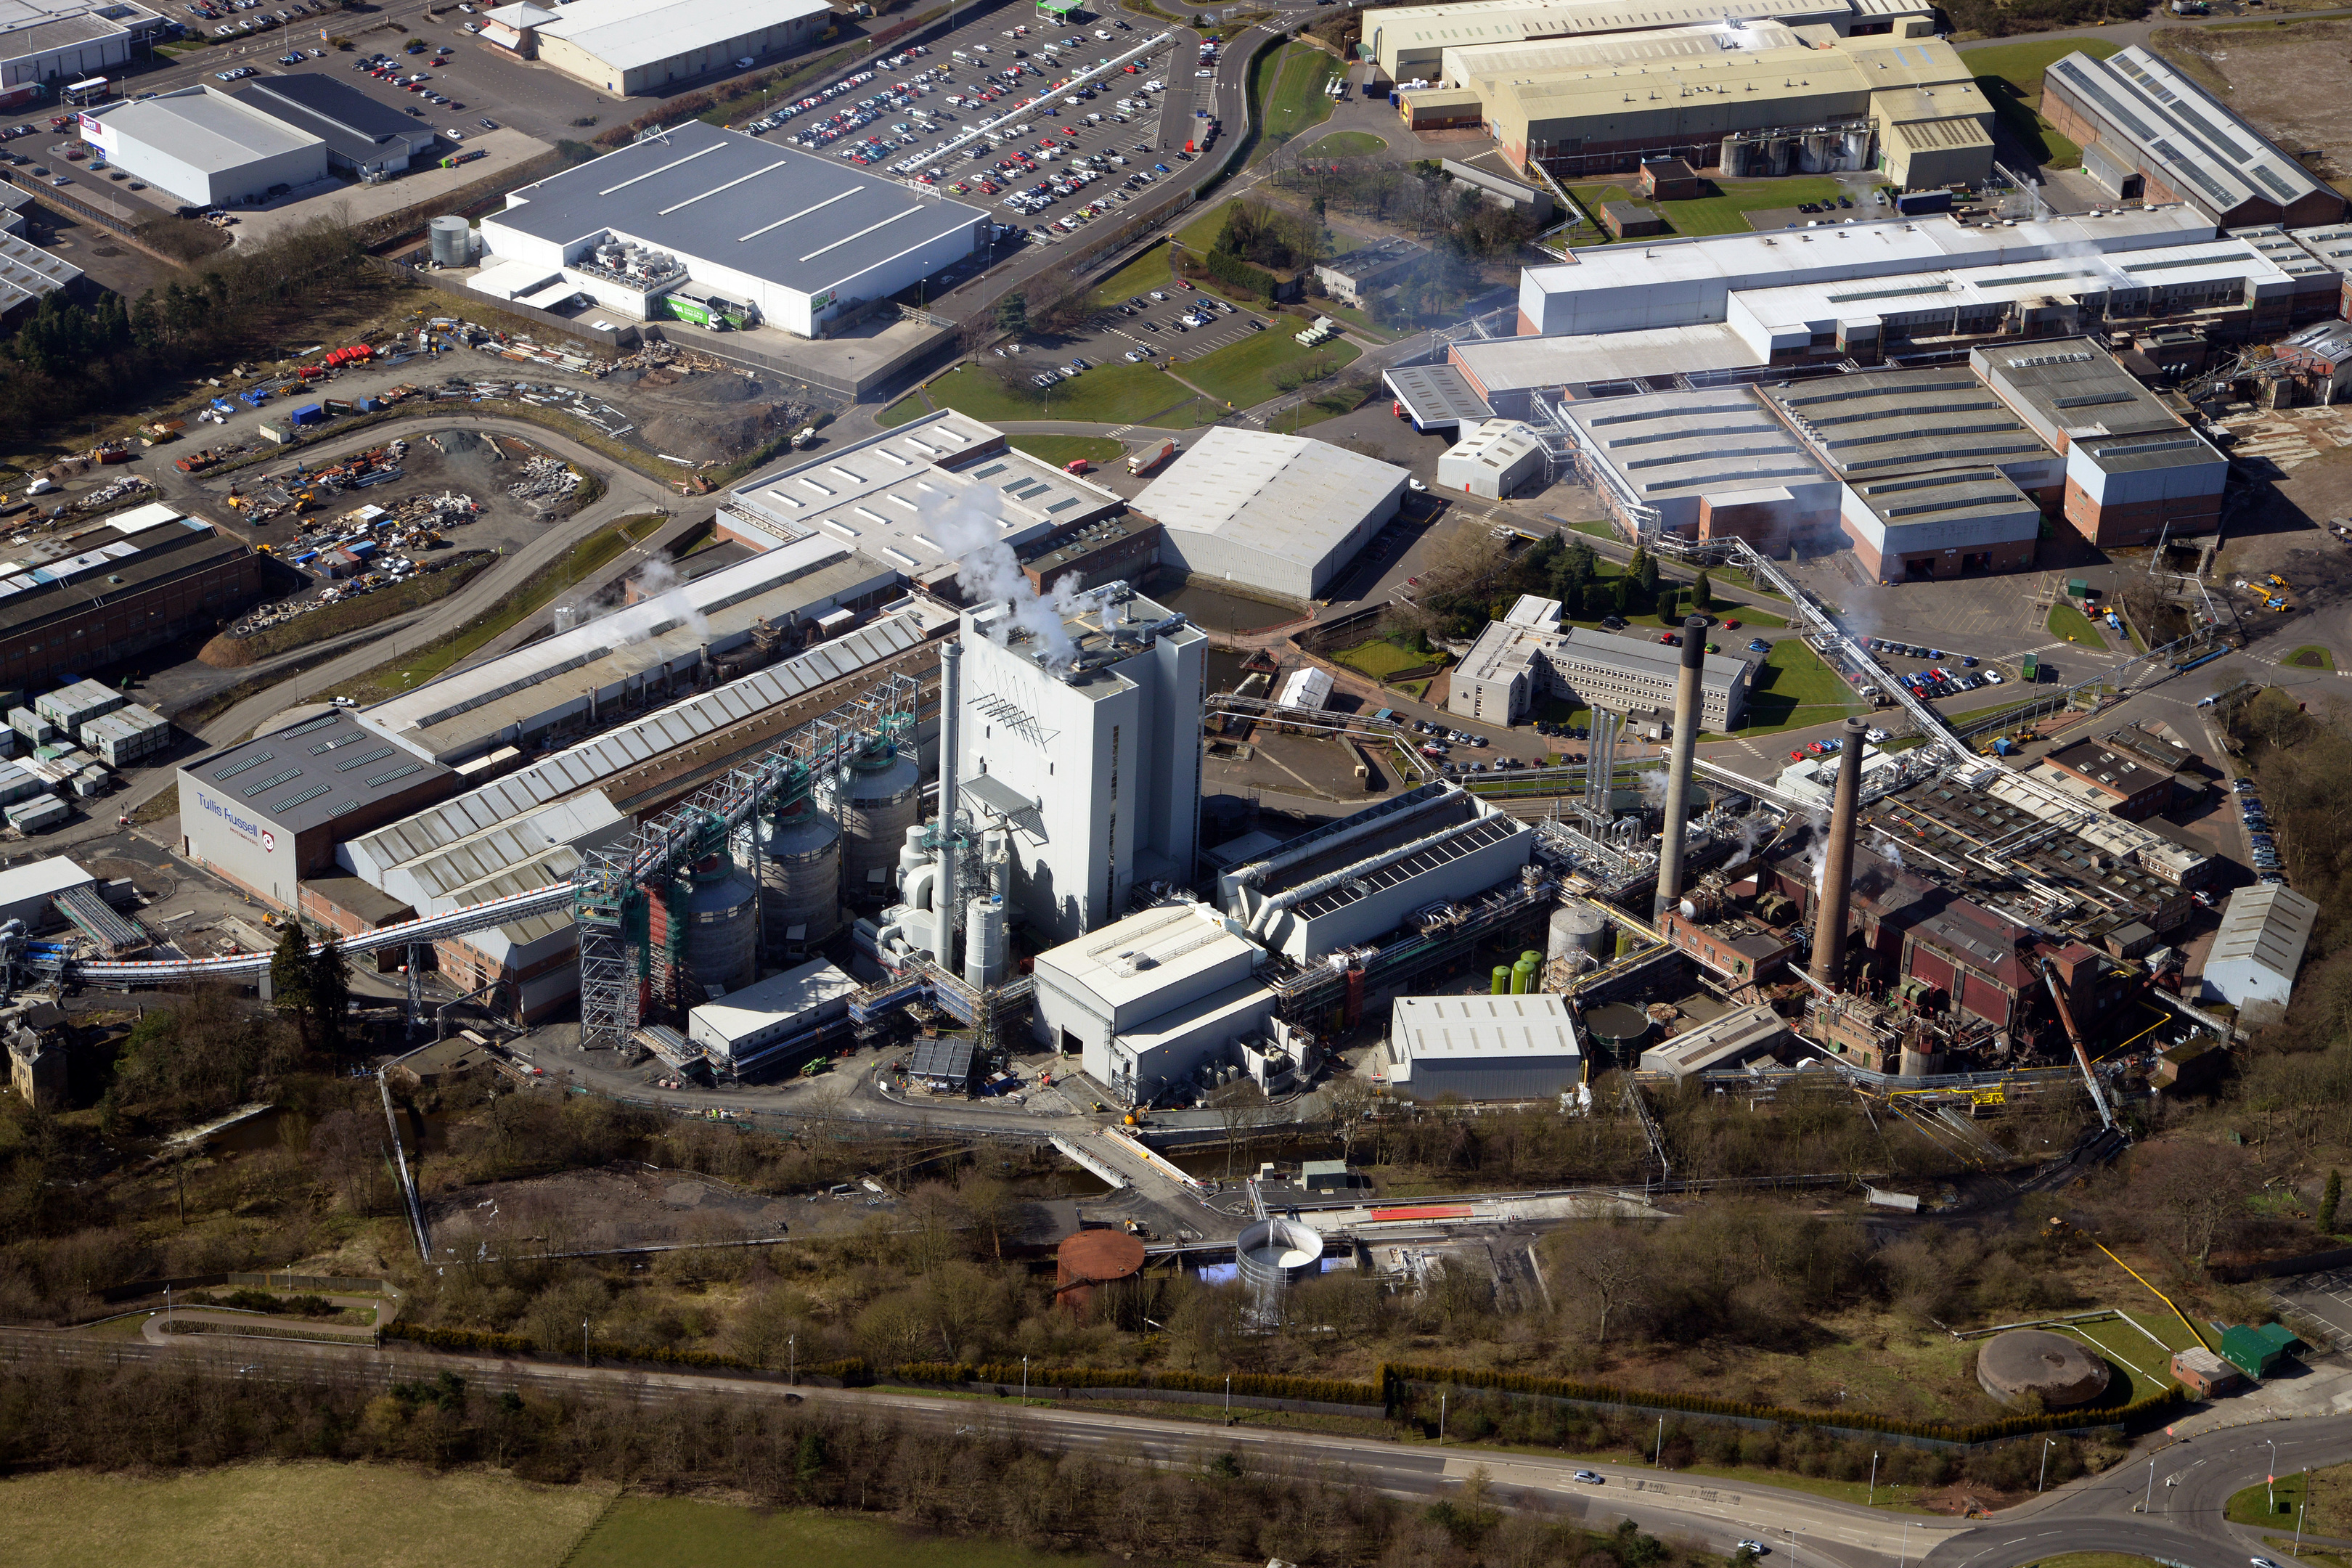 The Markinch biomass plant